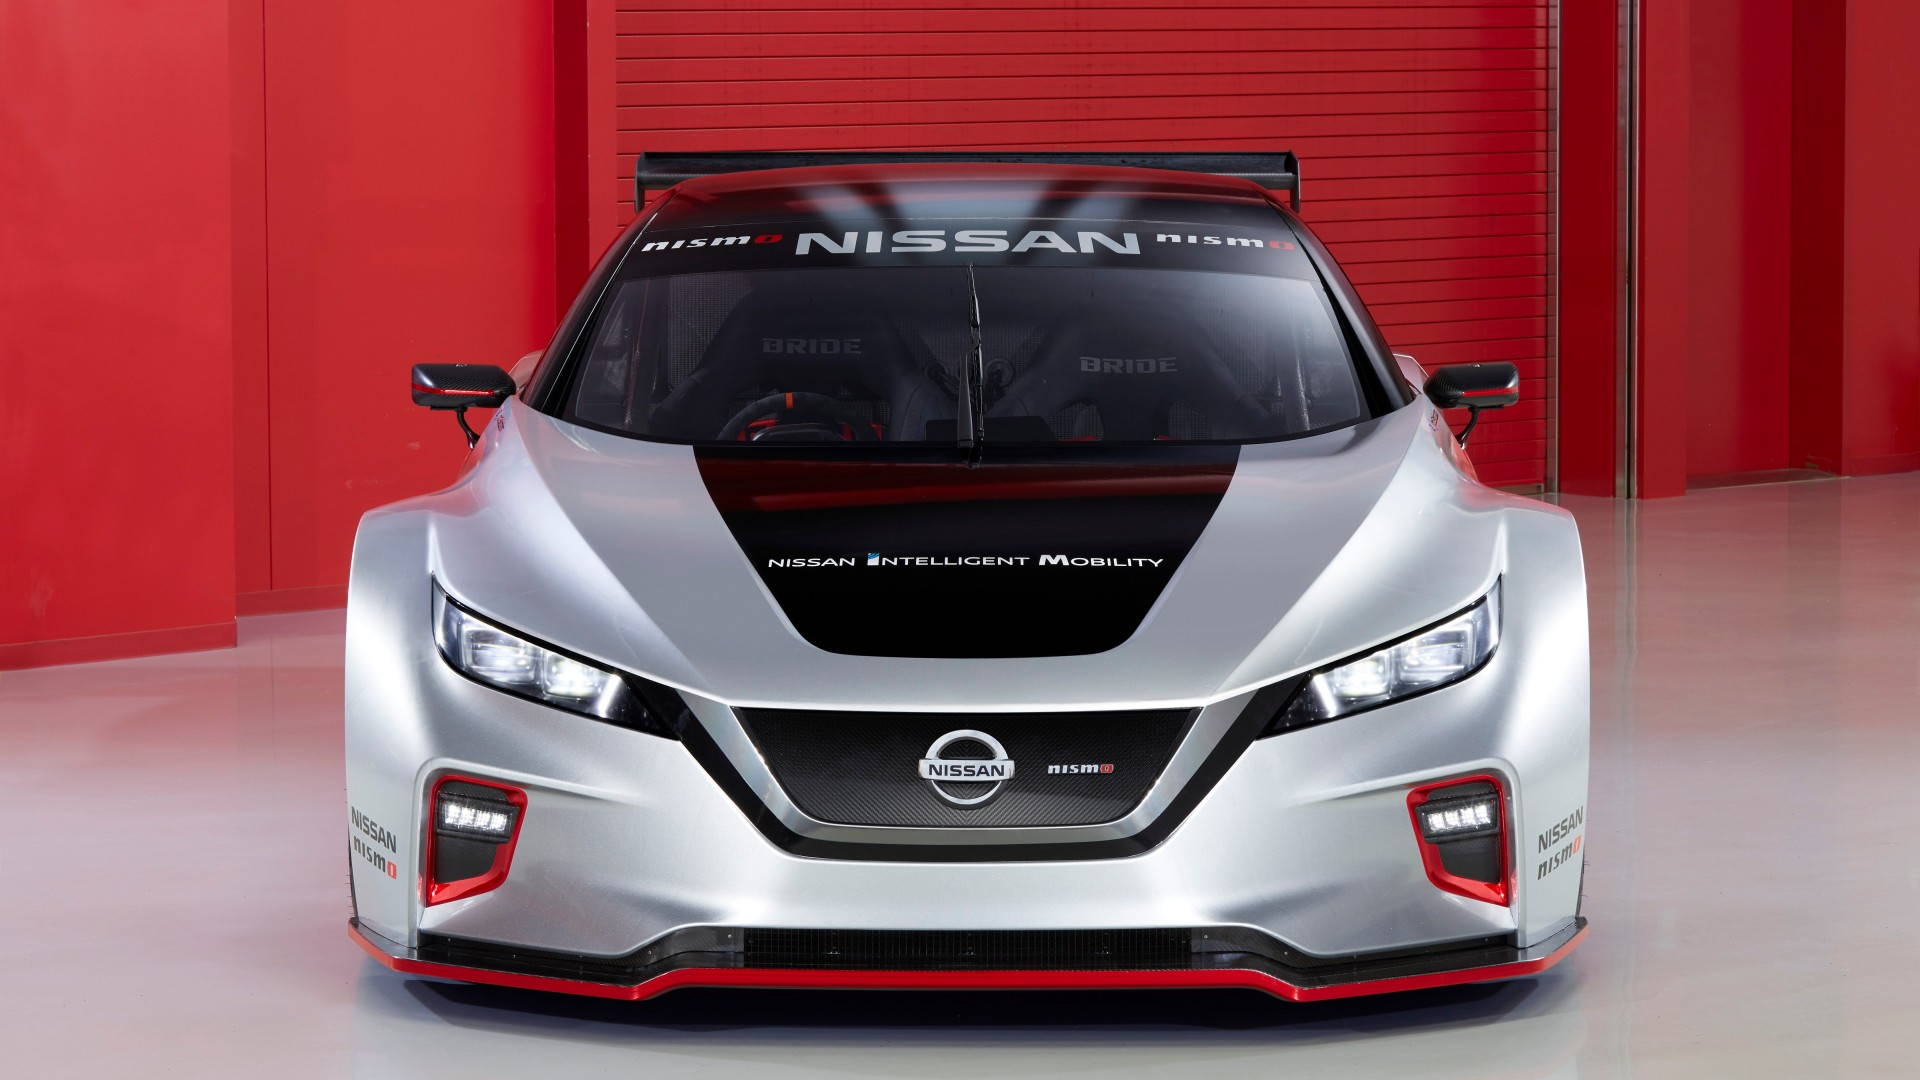 Cool Quotes Wallpaper Download Wallpaper Nissan Leaf Nismo Rc 2018 Cars Electric Cars